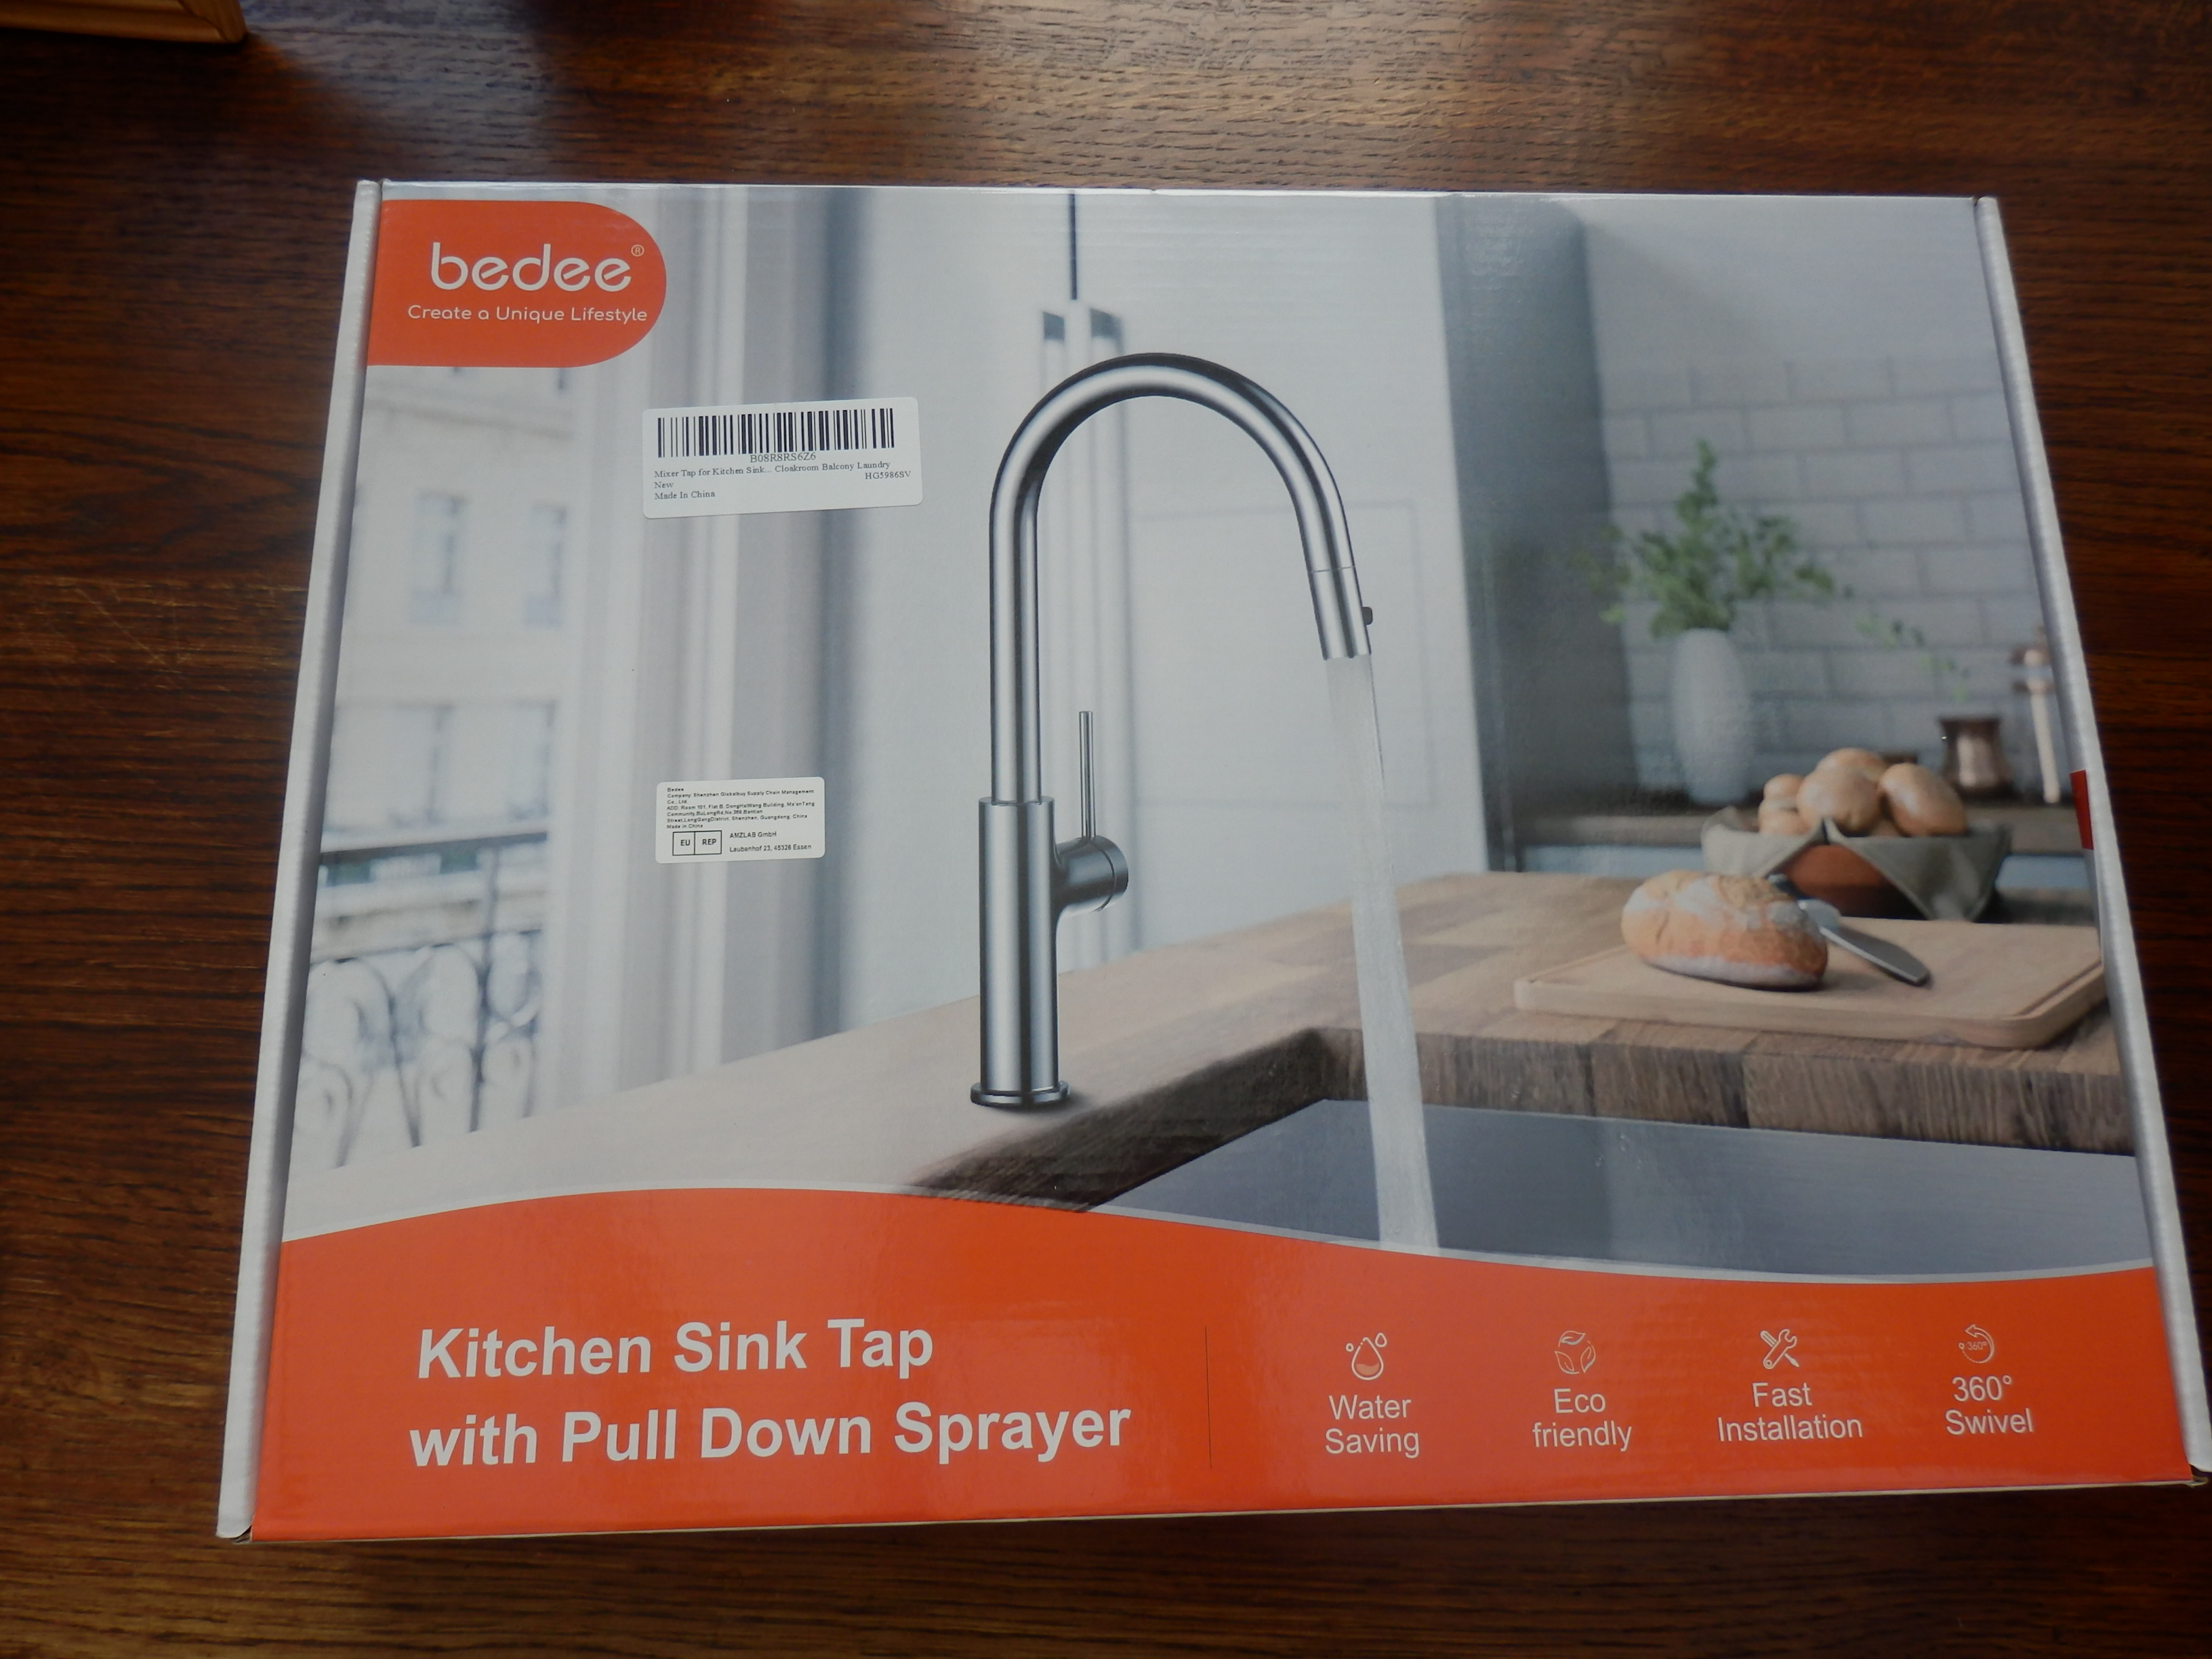 Stainless Steel Mixer Tap with Pull -down Spray for Kitchen Sink by Bedee